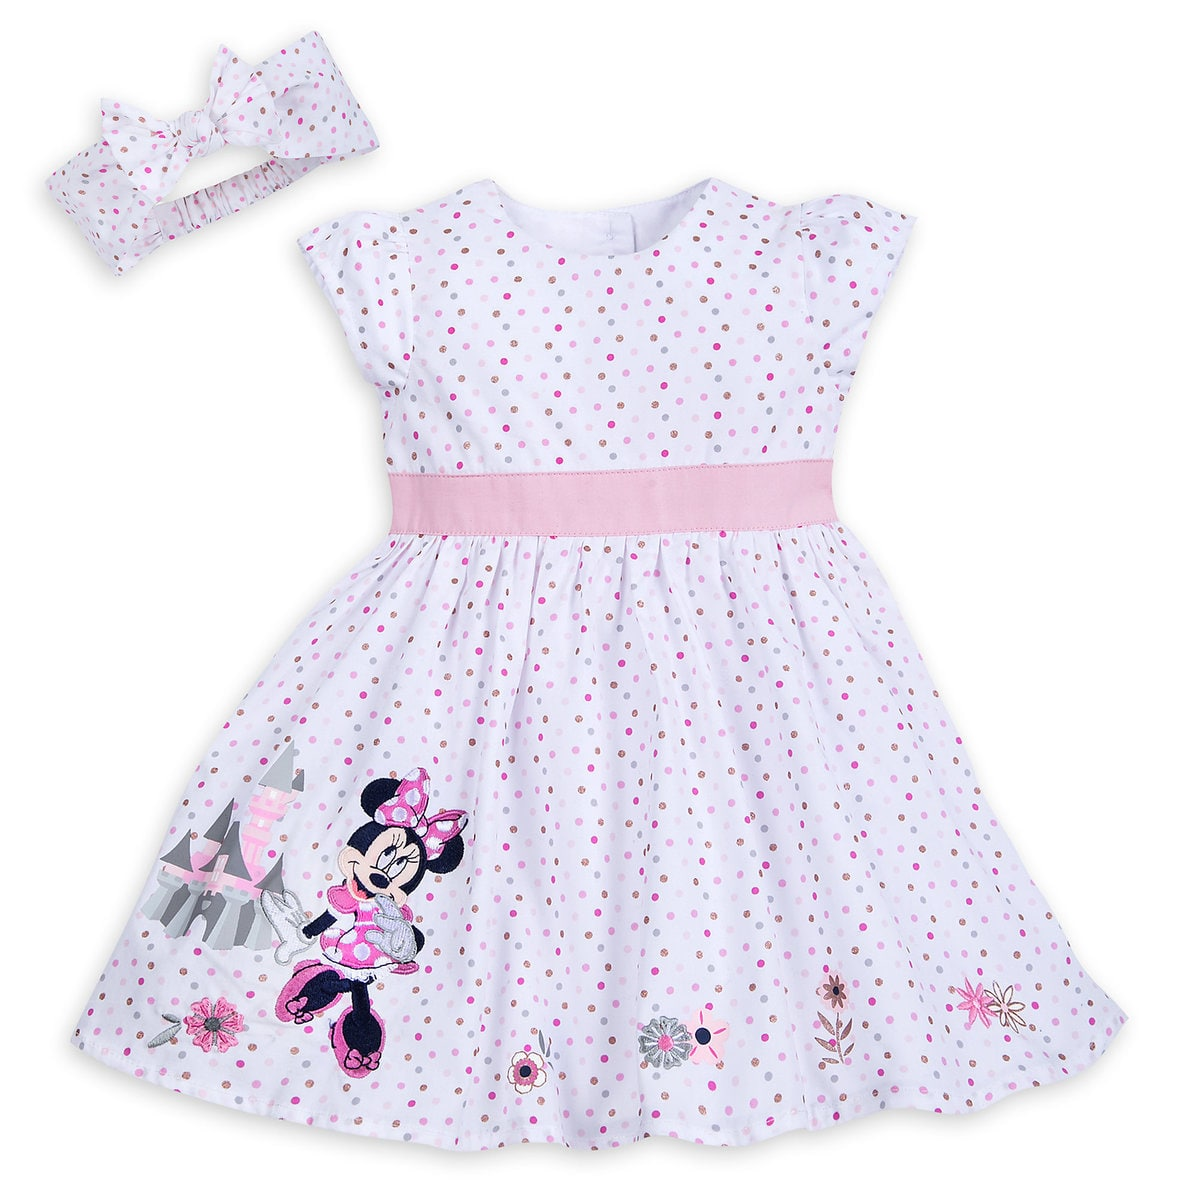 Disney Dress Set For Baby Minnie Mouse With Castle Pink